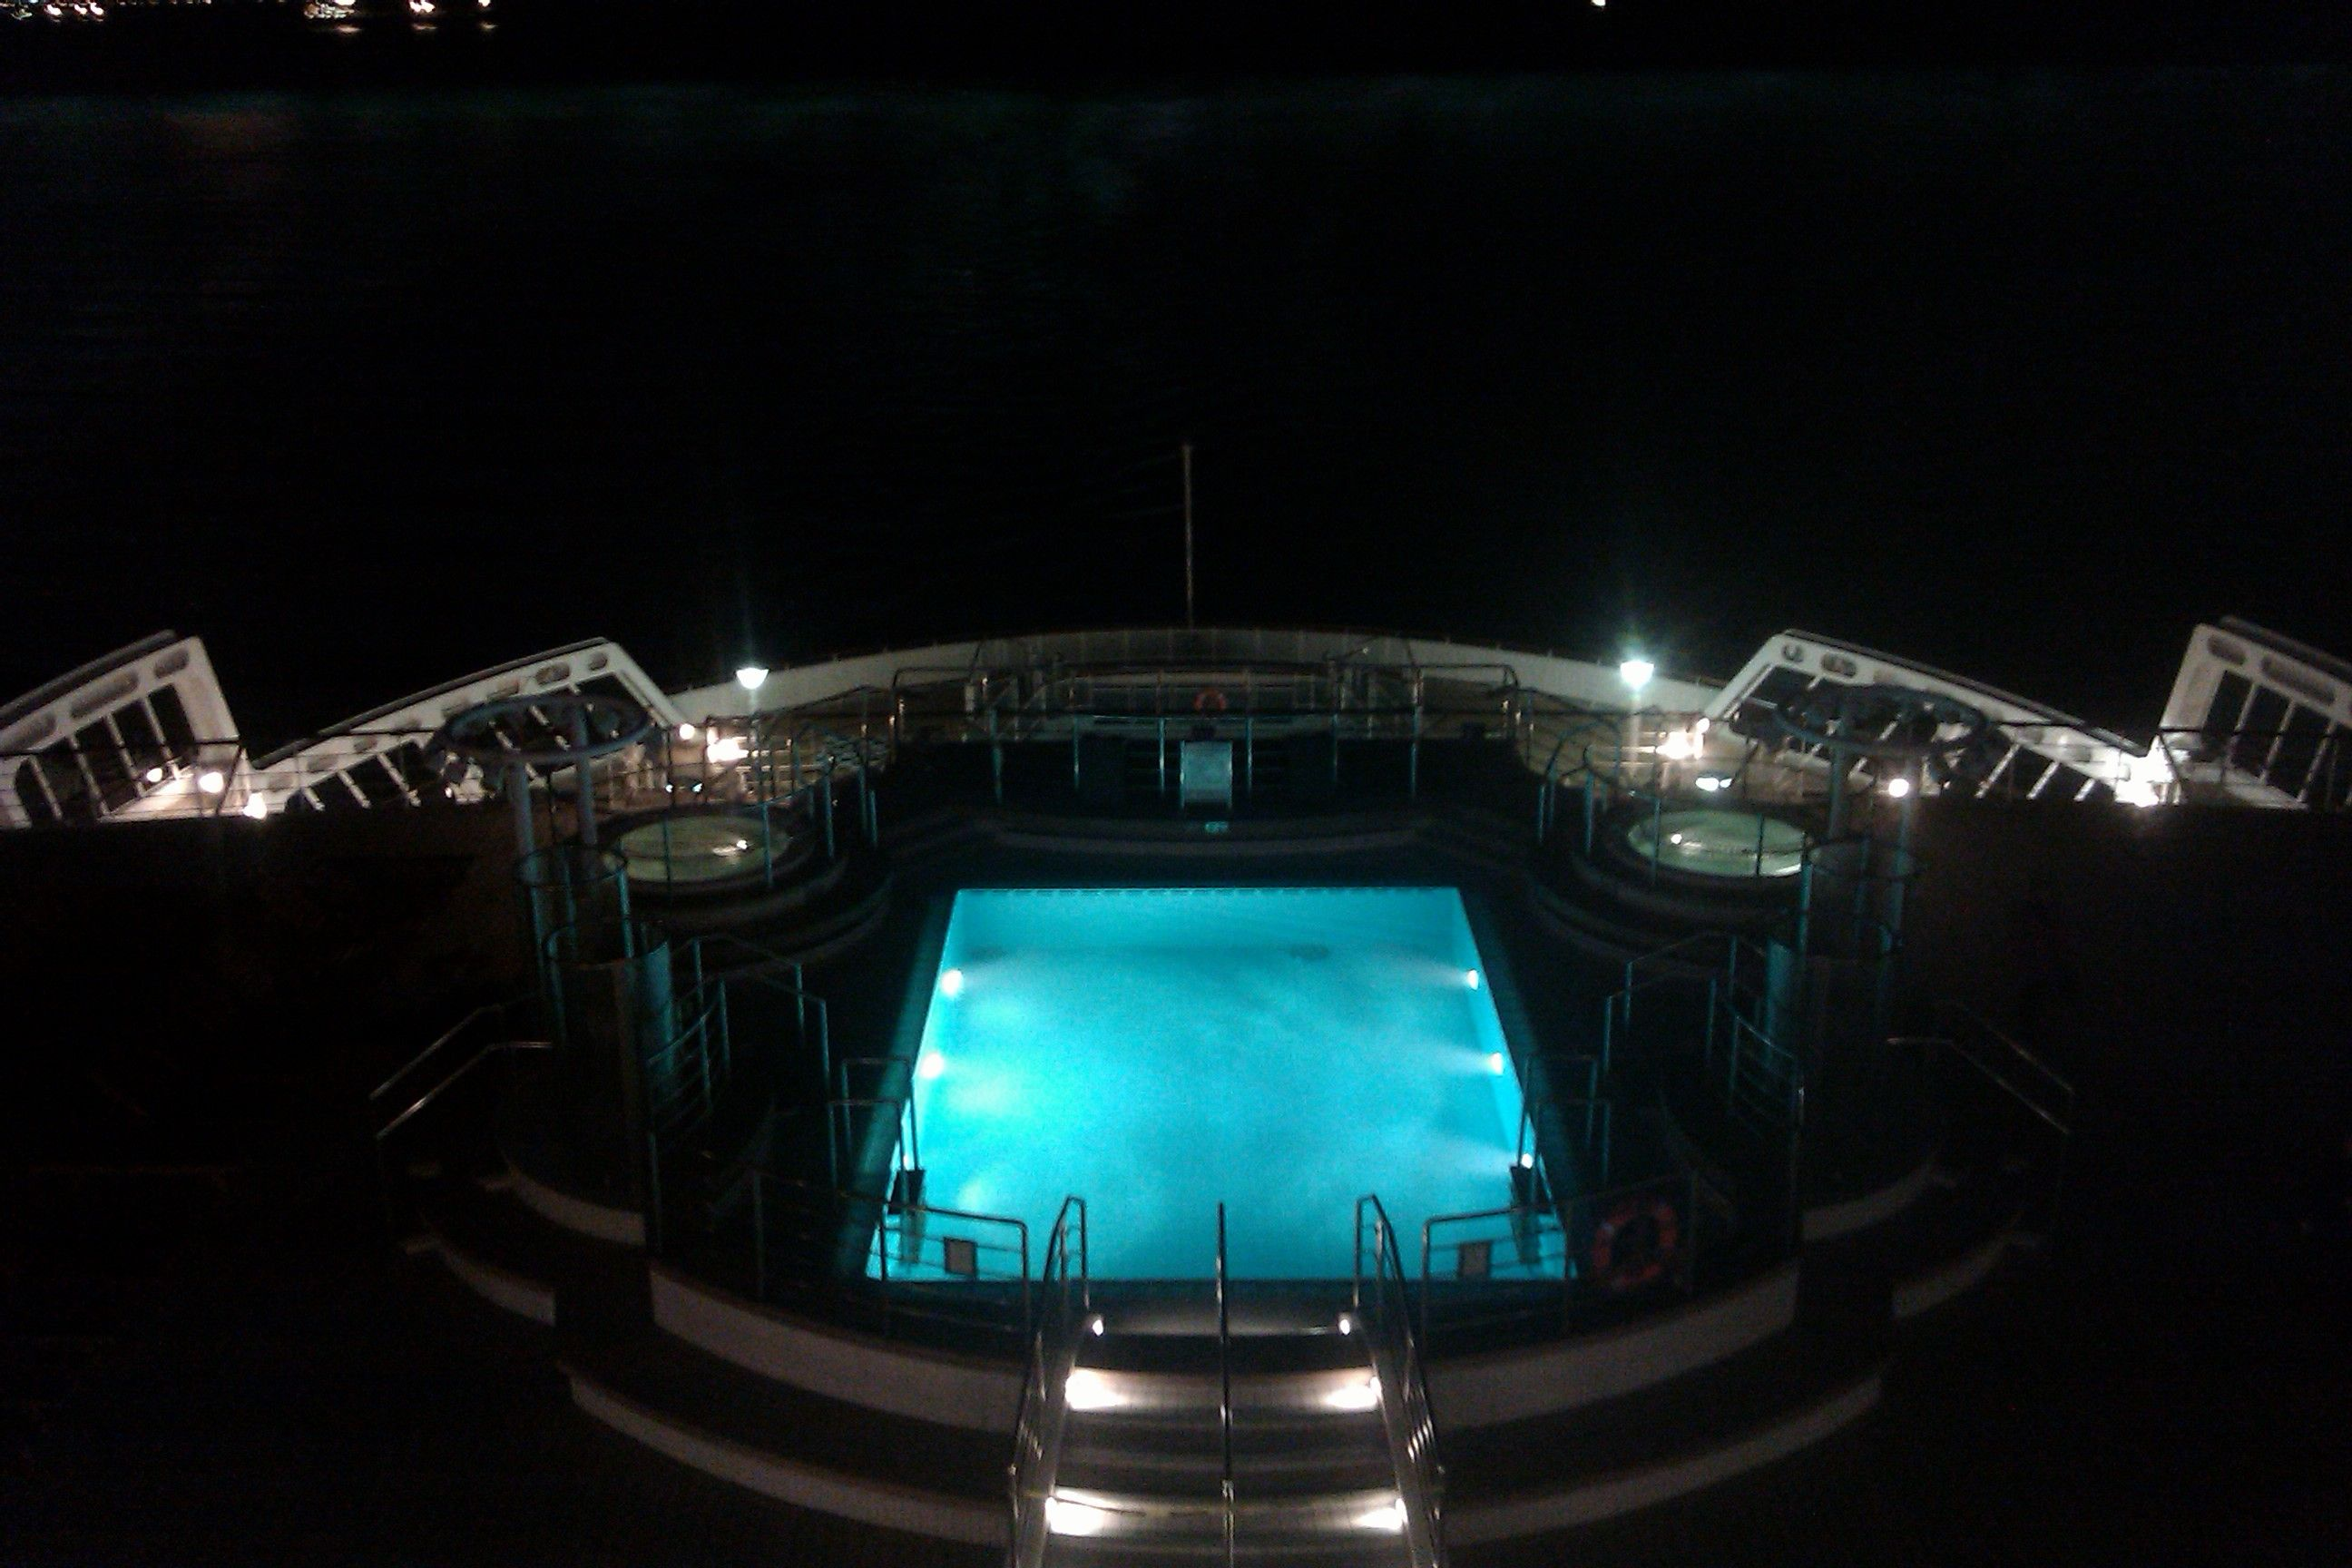 Swimming pool queen mary 2 queen mary 2 pinterest - Queen mary swimming pool victoria ...